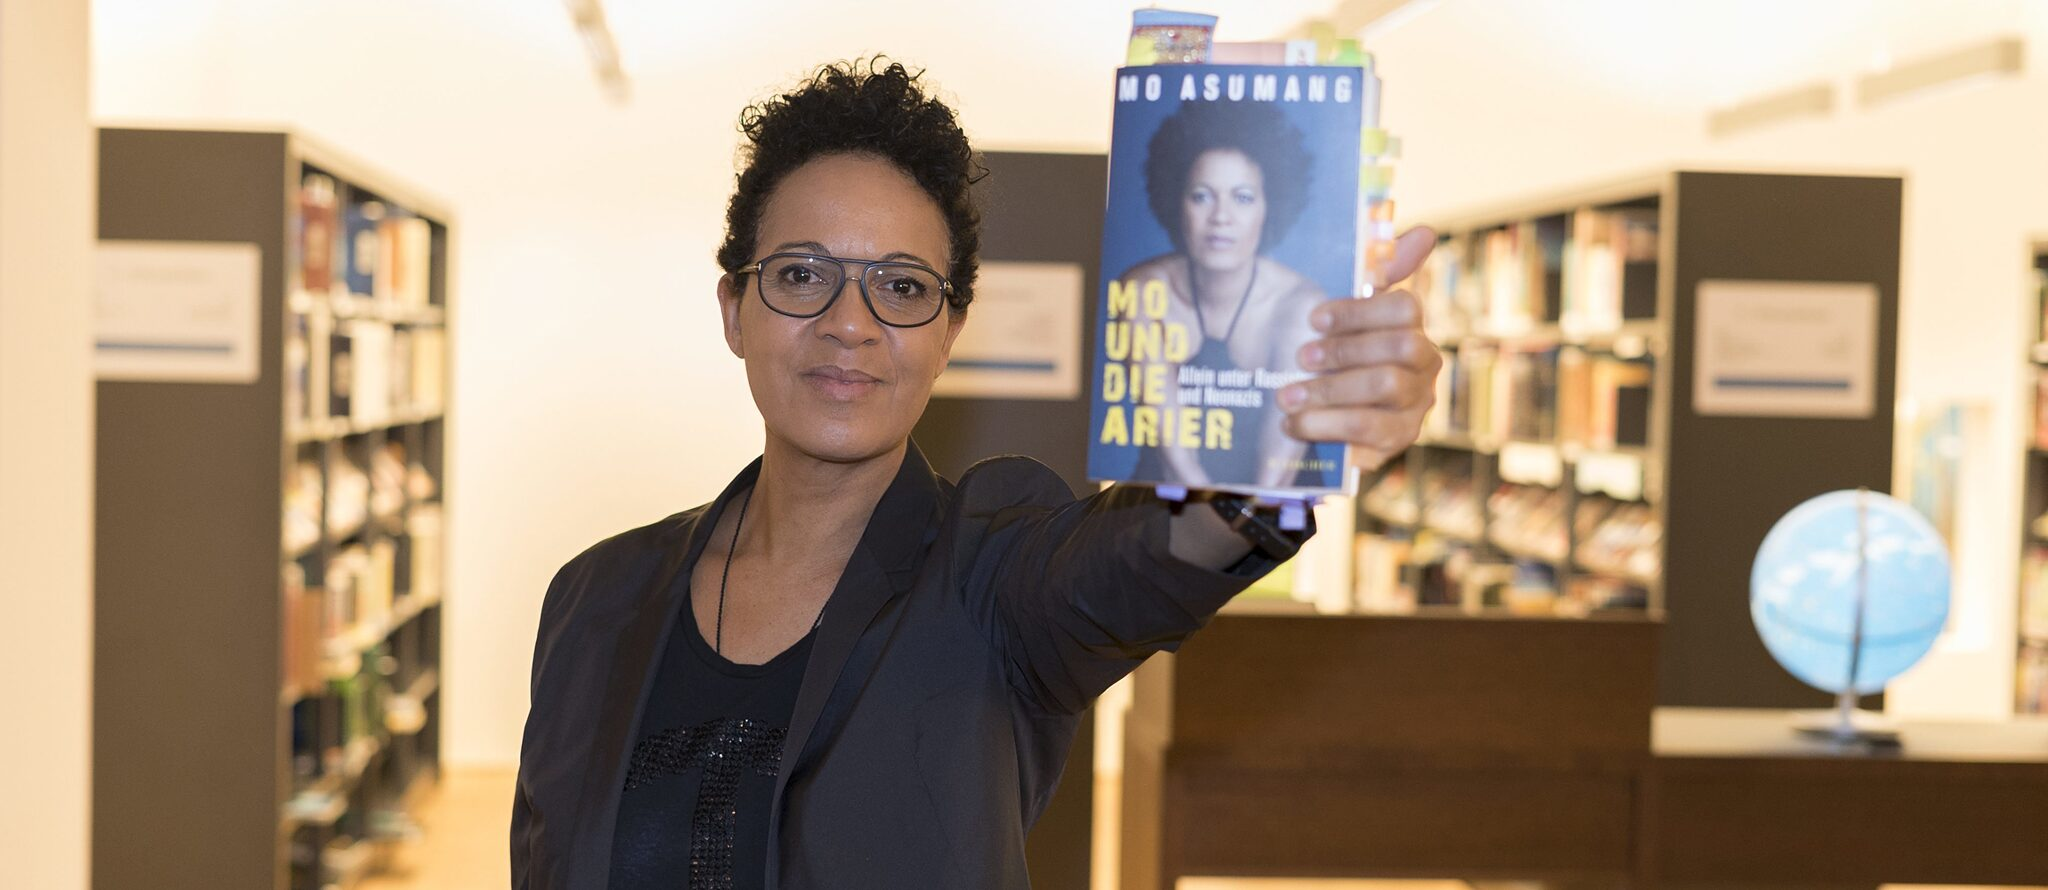 "The Afro-German author, television presenter and director Mo Asumang presents her book: ""Mo and the Aryans. Alone Among Racists and Neo-Nazis"""